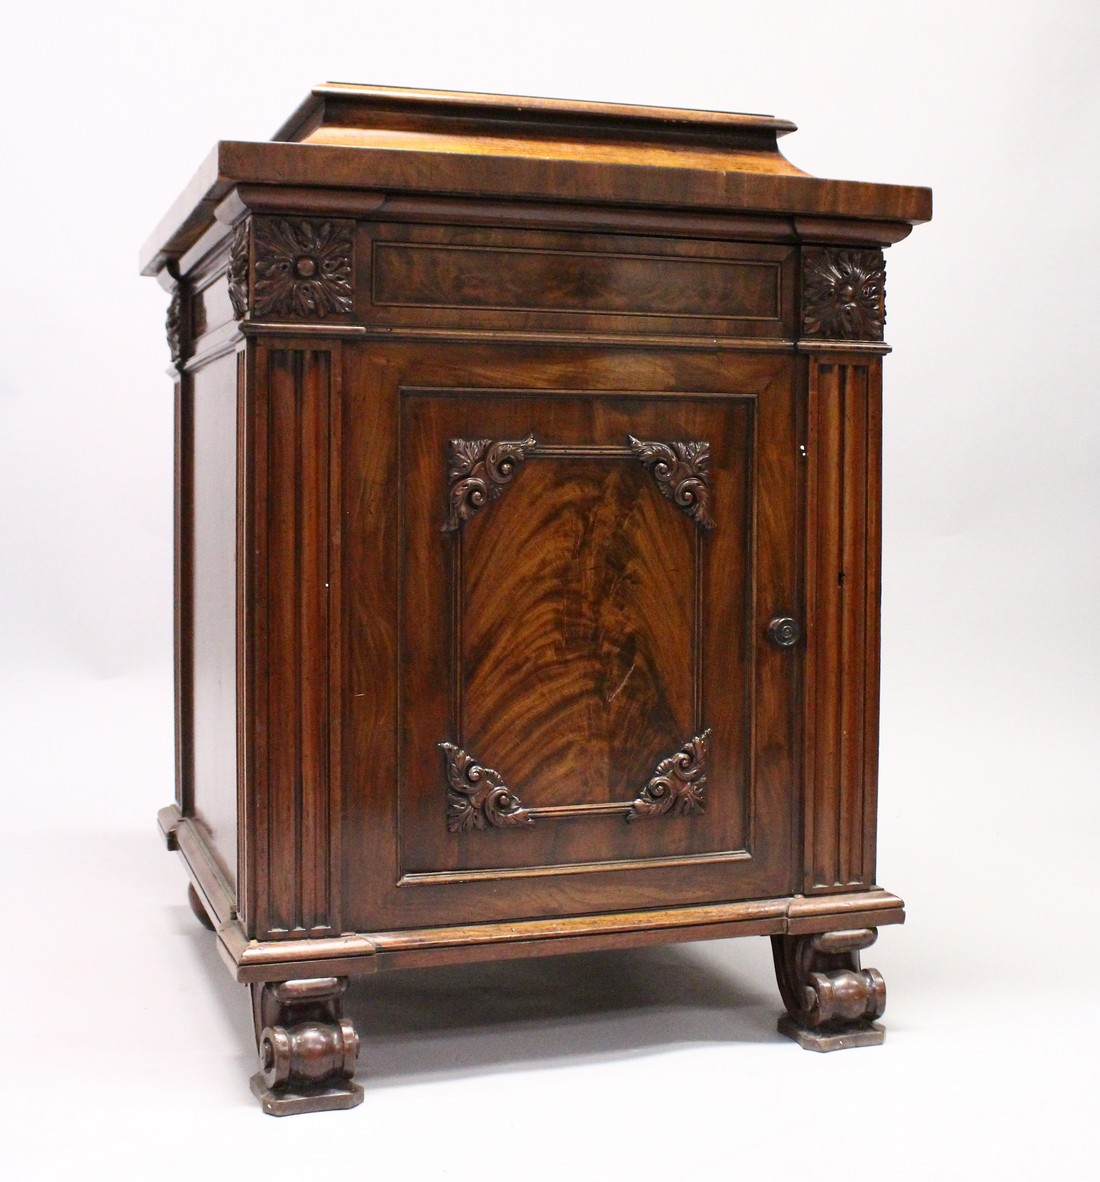 A GOOD 19TH CENTURY MAHOGANY PEDESTAL CUPBOARD, with a concave moulded top, panelled frieze with